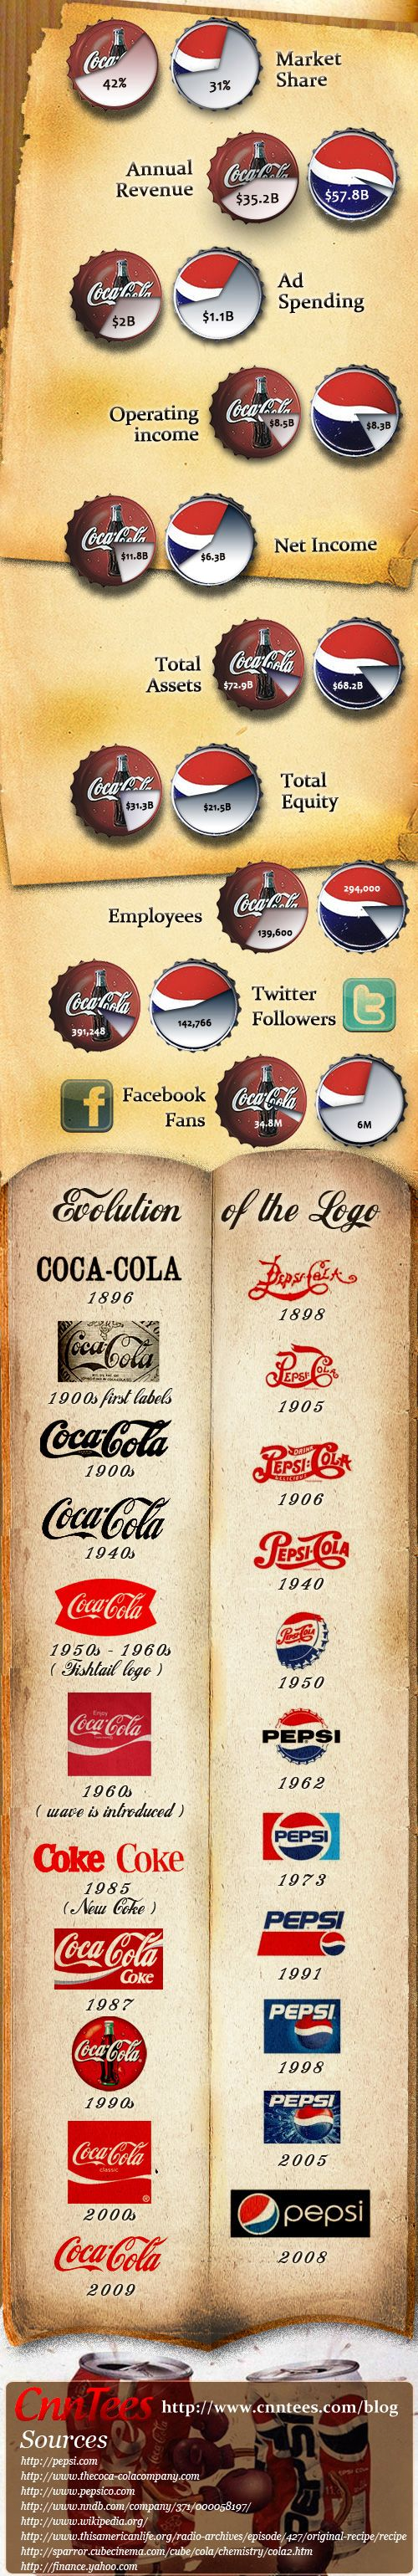 top ideas about coca cola logo logo coca 4 6 2012 history of coca cola vs pepsi infographic